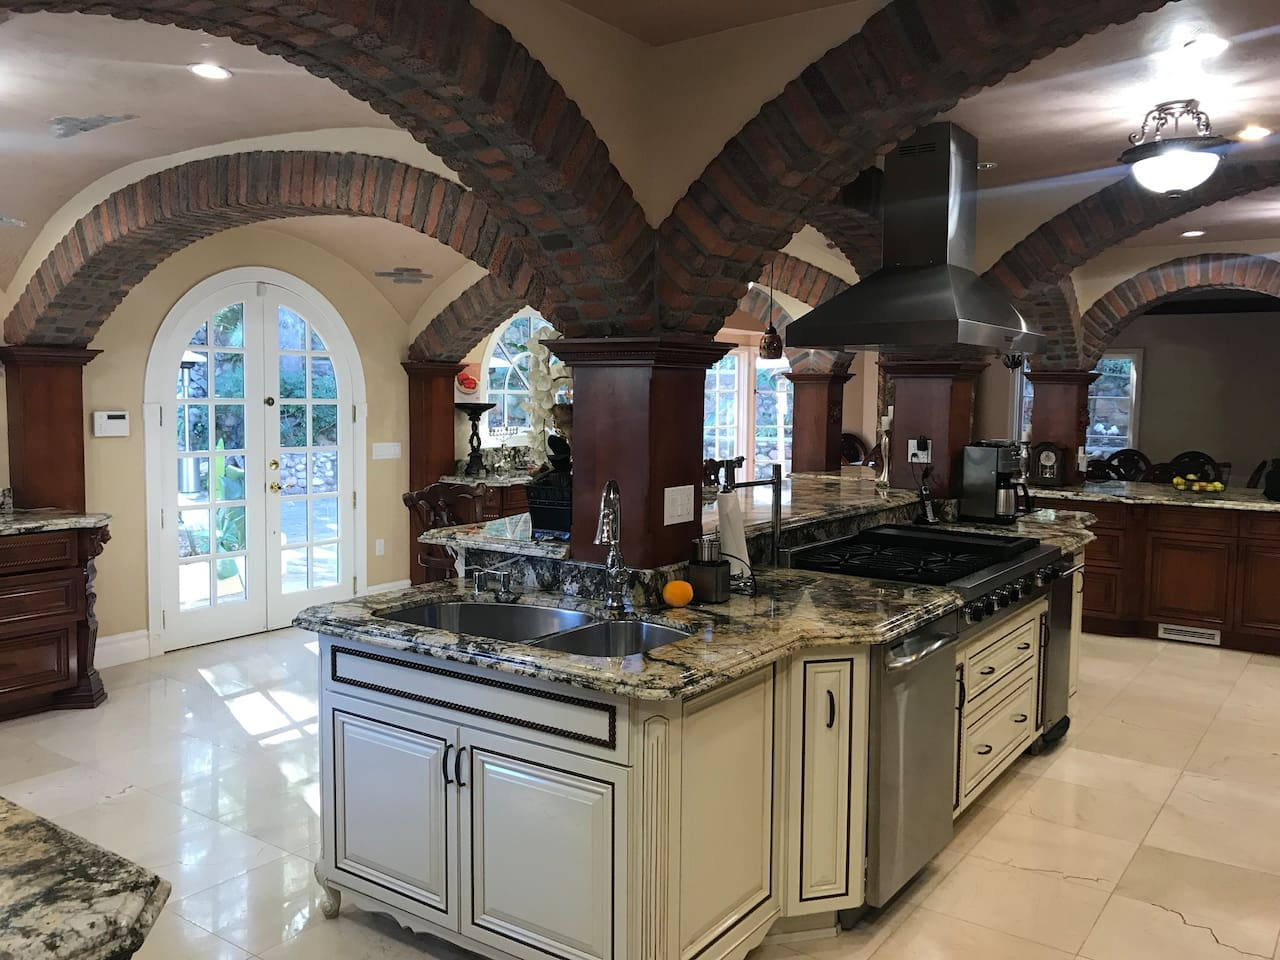 This kitchen been designed by Italian architect and it's replicated famous restaurant in Venice Italy. The granite slabs made of one piece imported from Italy and there is no second to that in the world. It cost over $750k to build it in 2014.